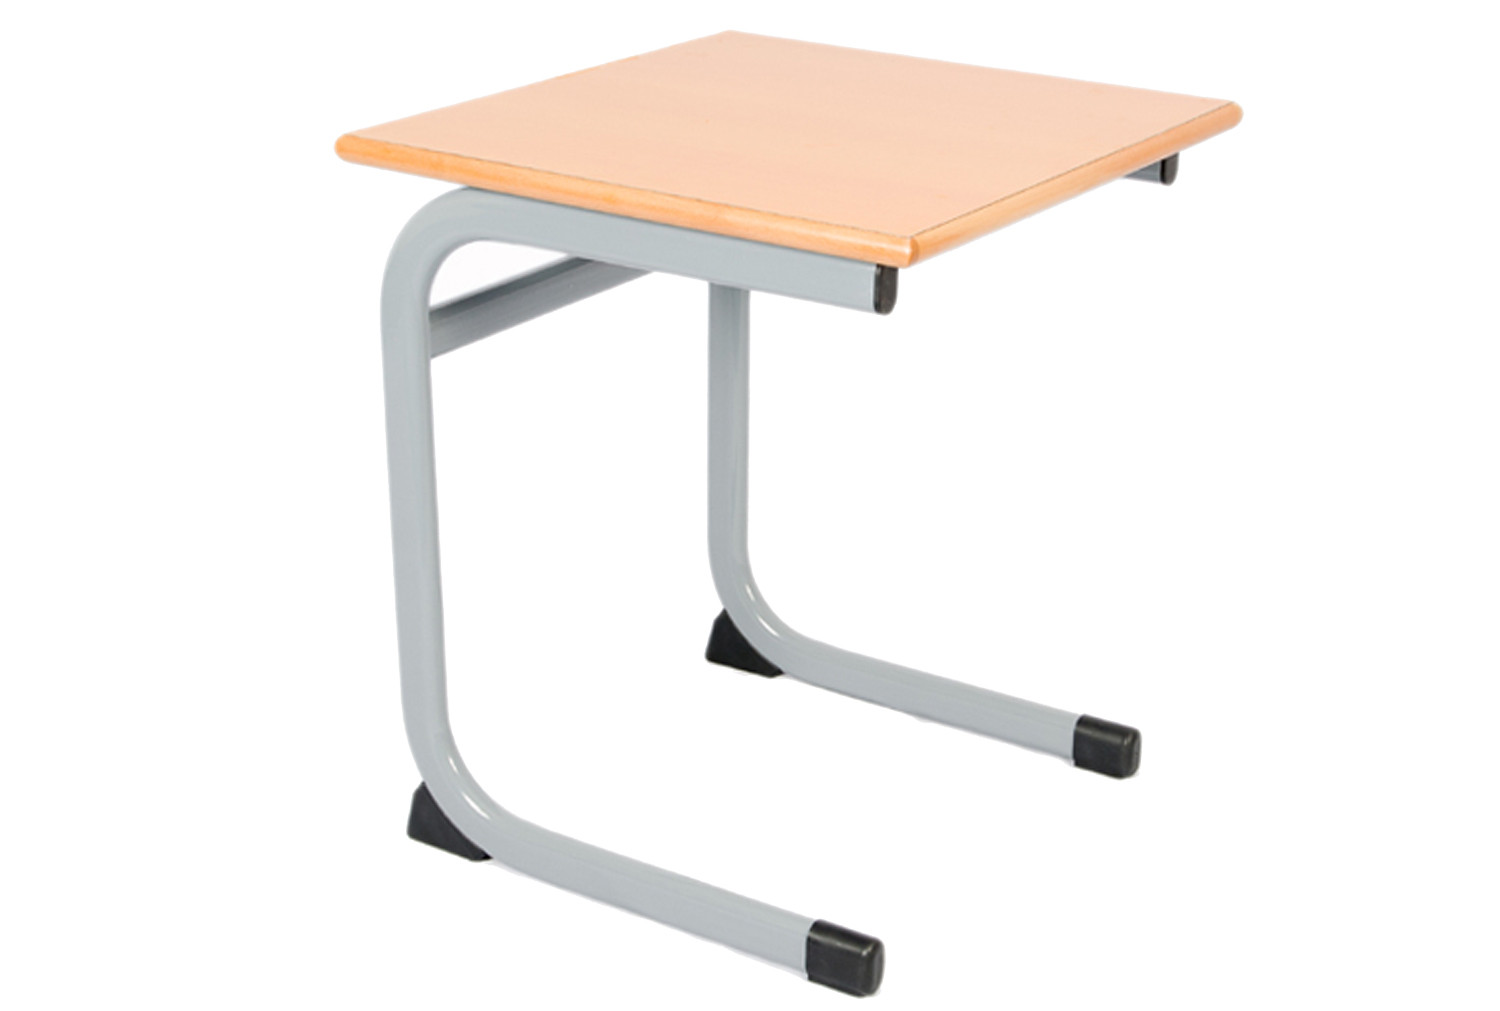 Sands single classroom table